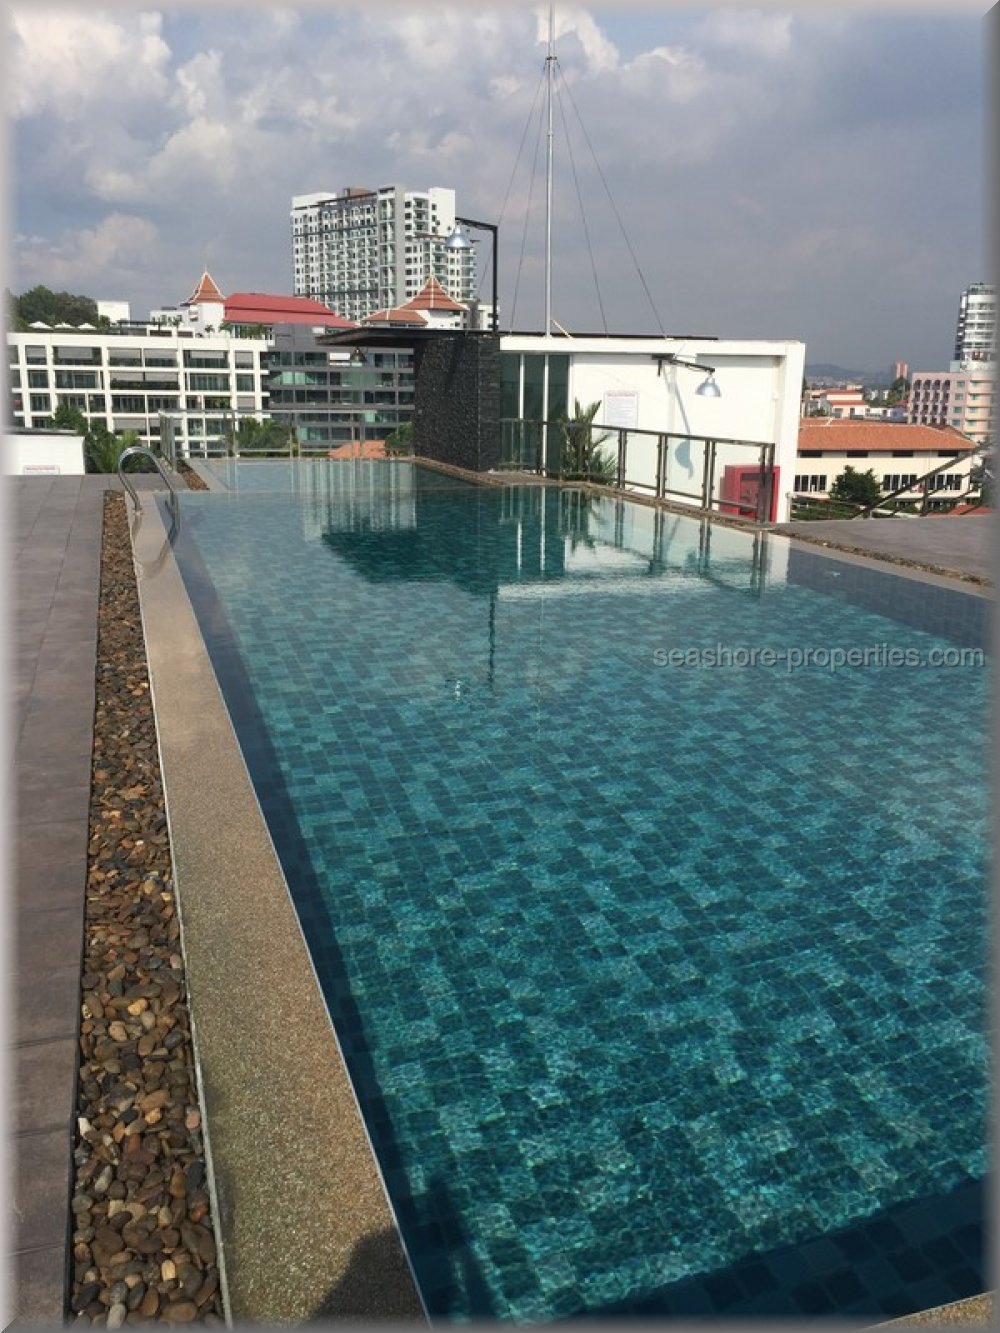 pic-11-Seashore Properties (Thailand) Co. Ltd. south beach condo   for sale in Pratumnak Pattaya